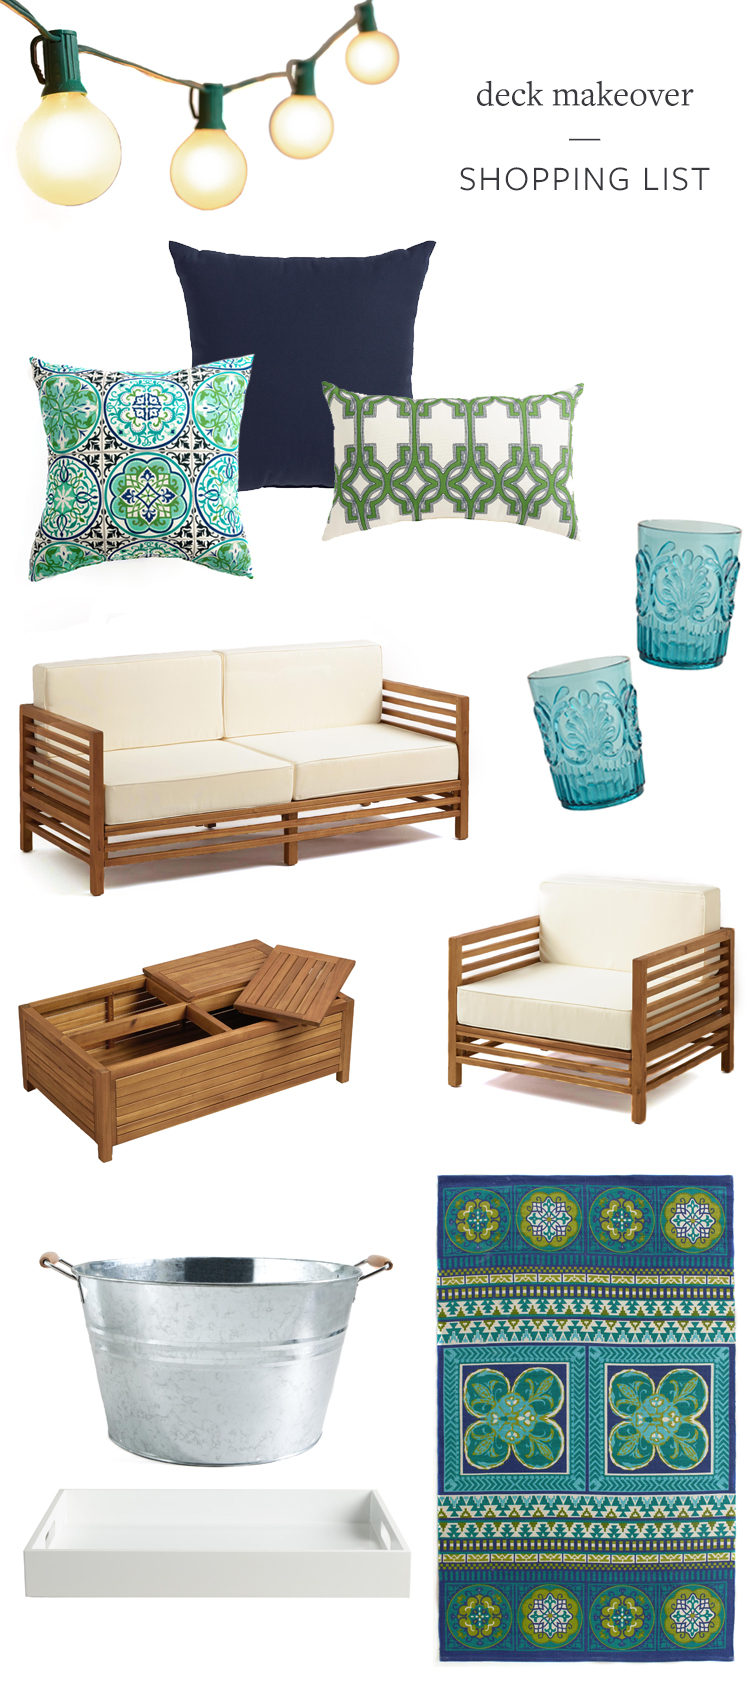 jojotastic deck makeover with World Market before inspiration